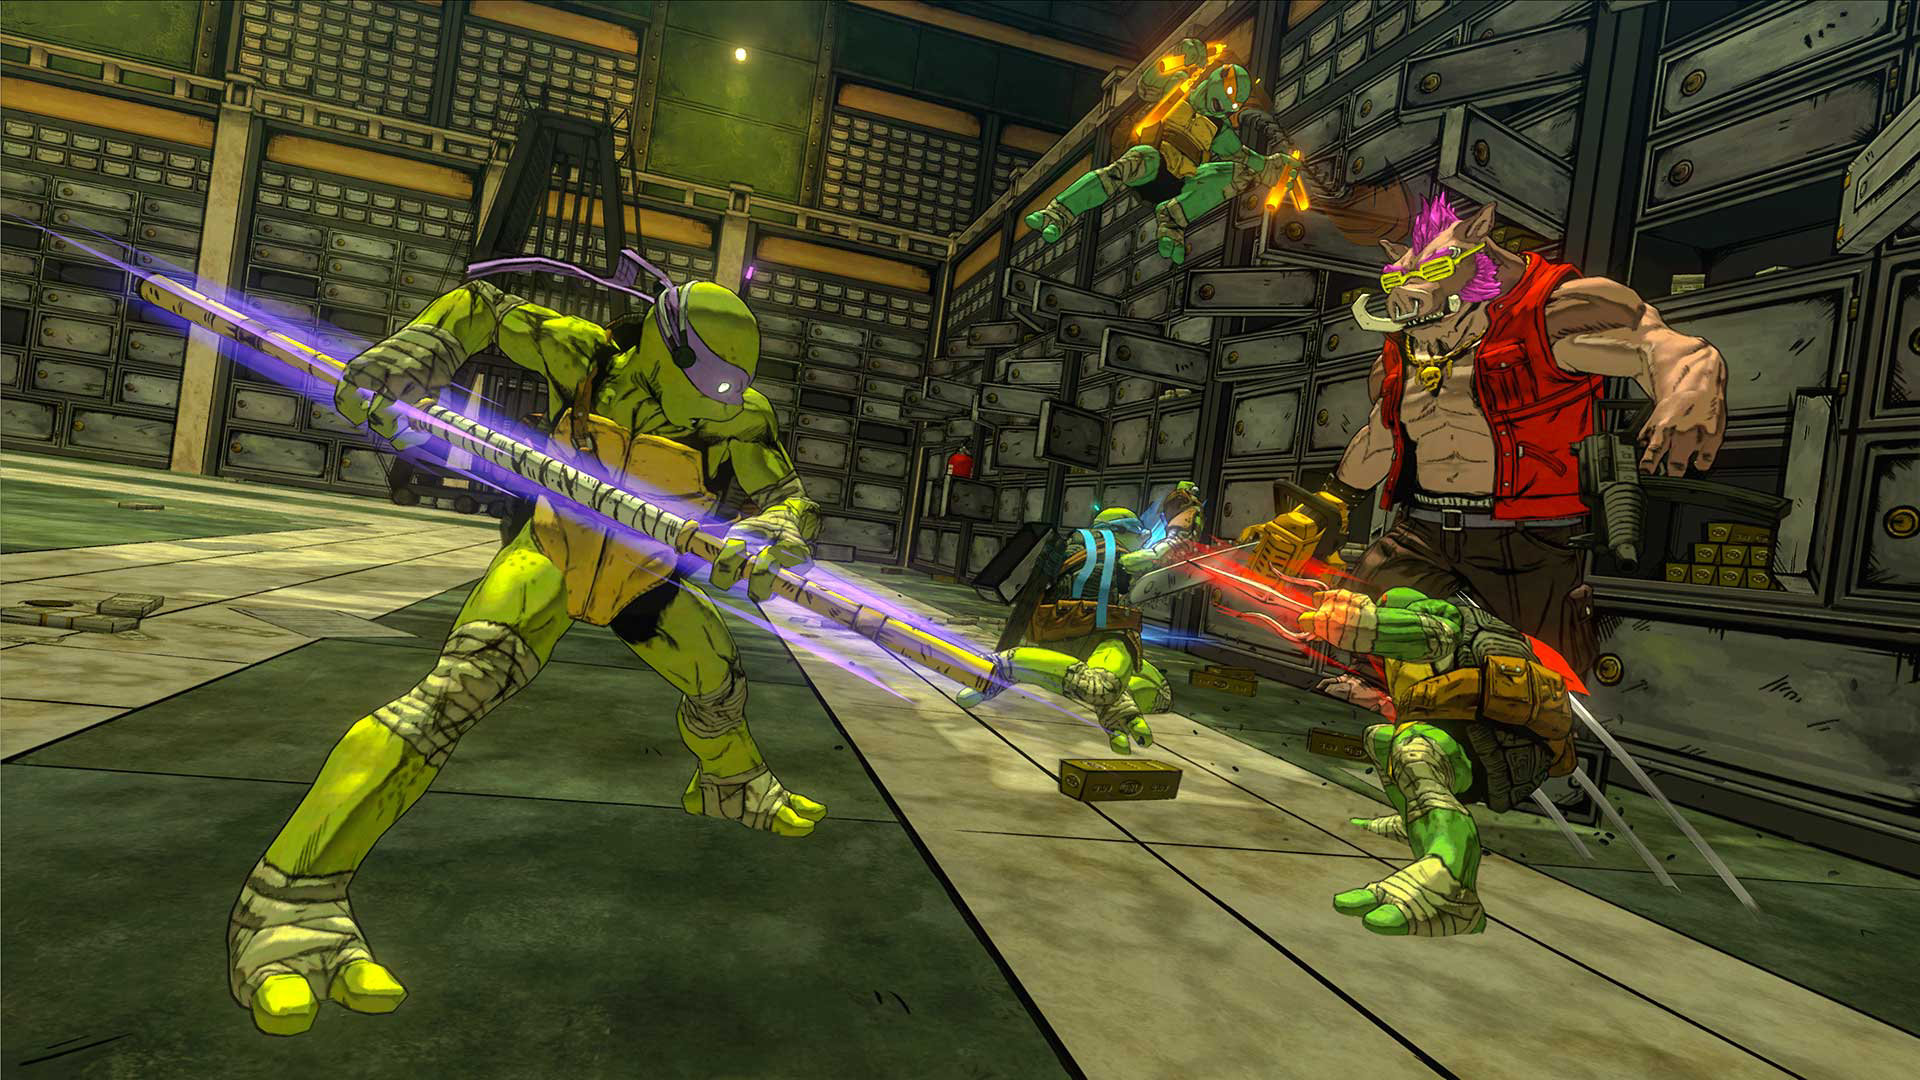 Ninja Turtle Sewer Background